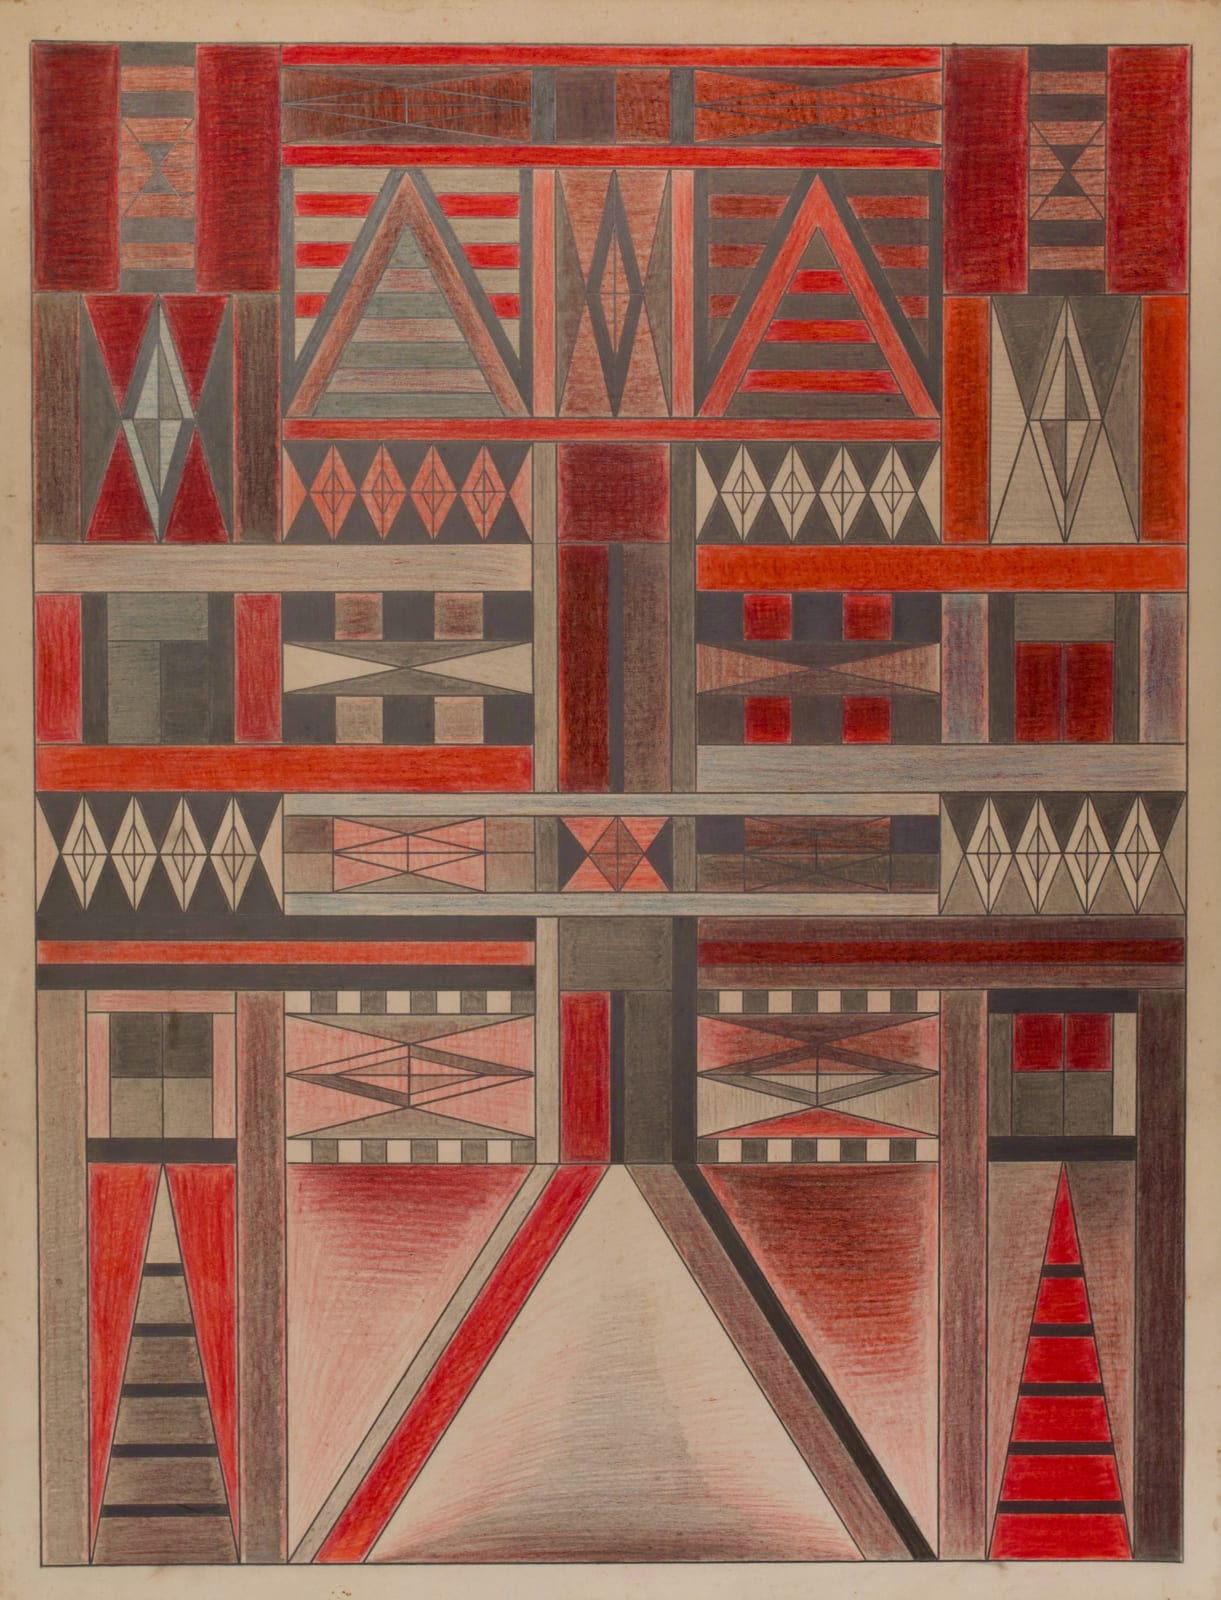 Untitled, ca. 1930 - 55 Colored pencil and graphite on paper 21 x 17 1/2 in. 53.3 x 44.5 cm. (DG 52)